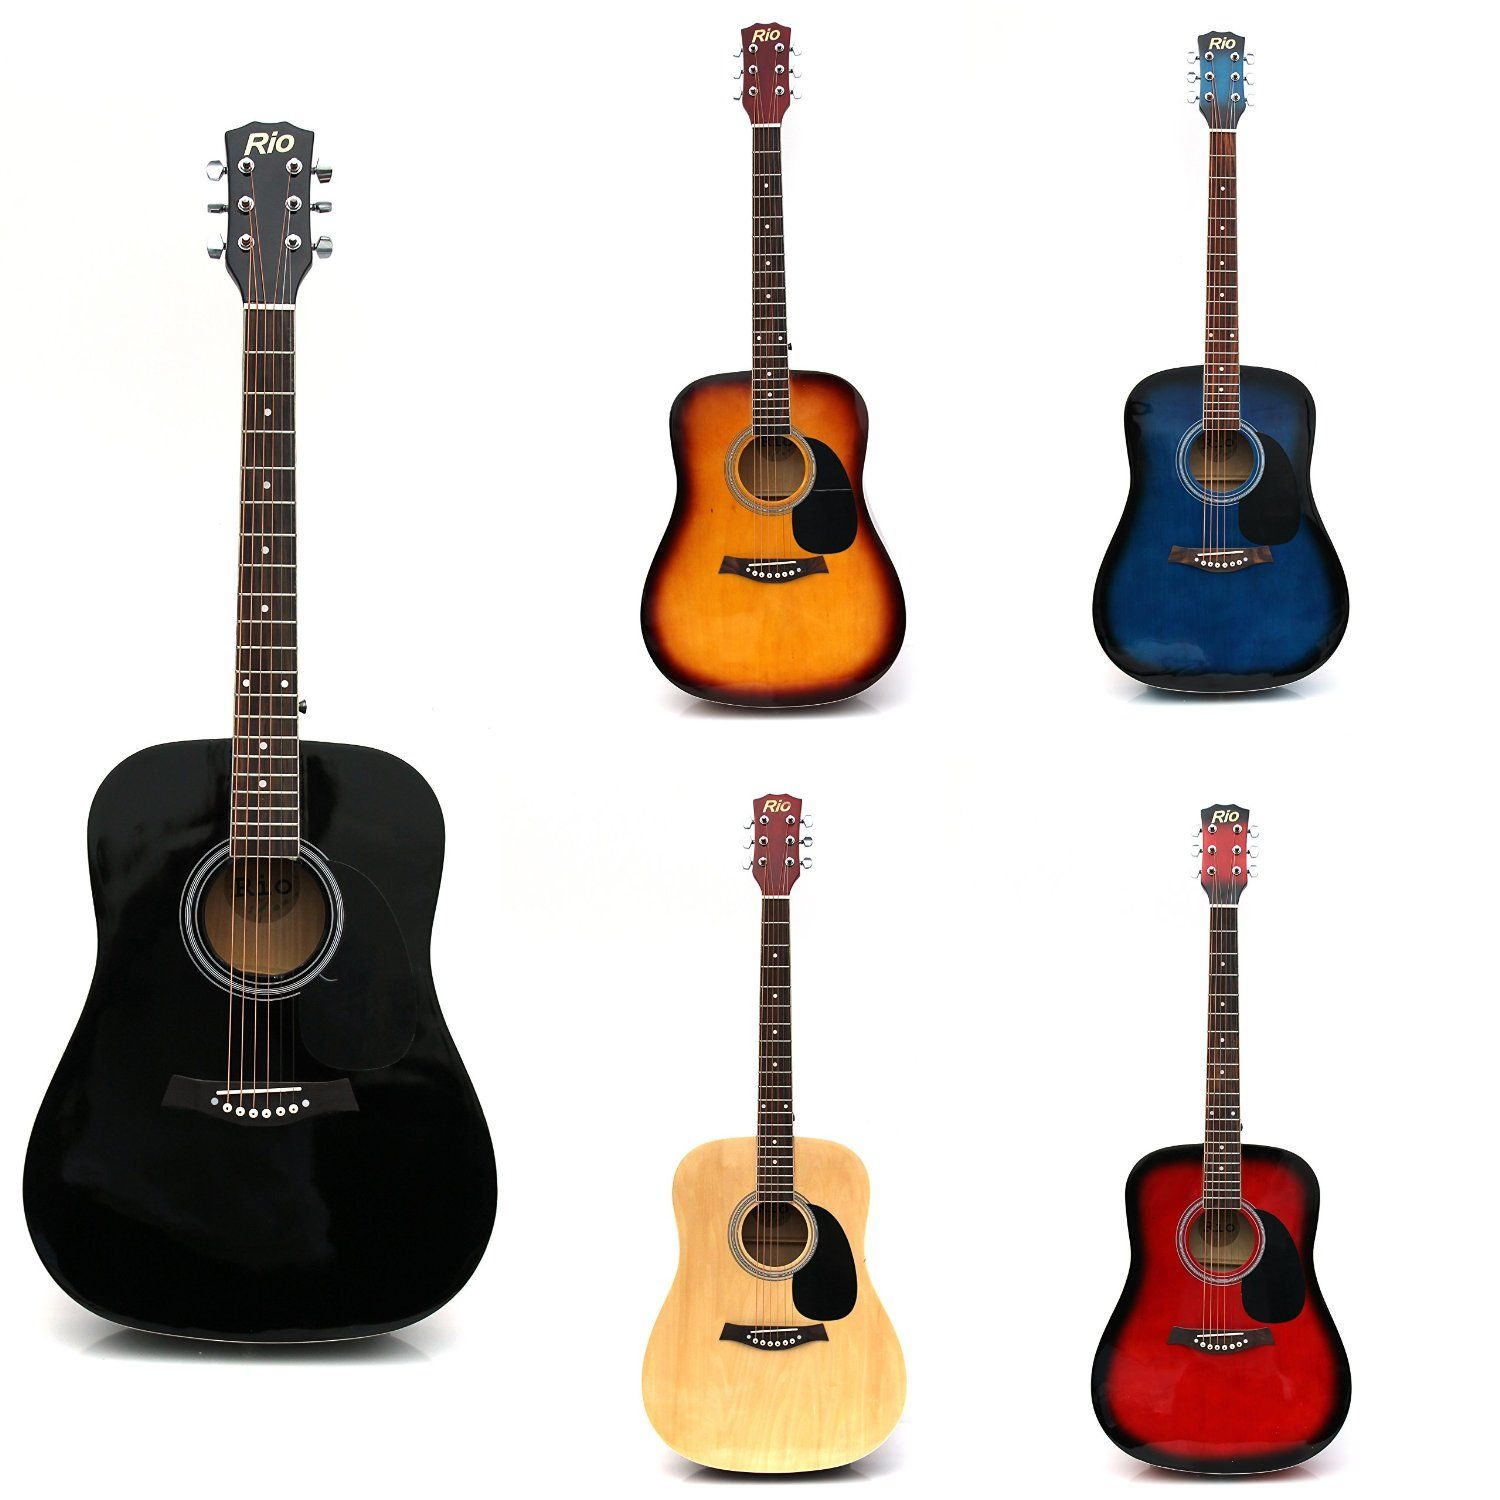 Basic Acoustic Guitars : rio 4 4 full size student adult beginner acoustic guitar package pack outfit new ebay ~ Hamham.info Haus und Dekorationen